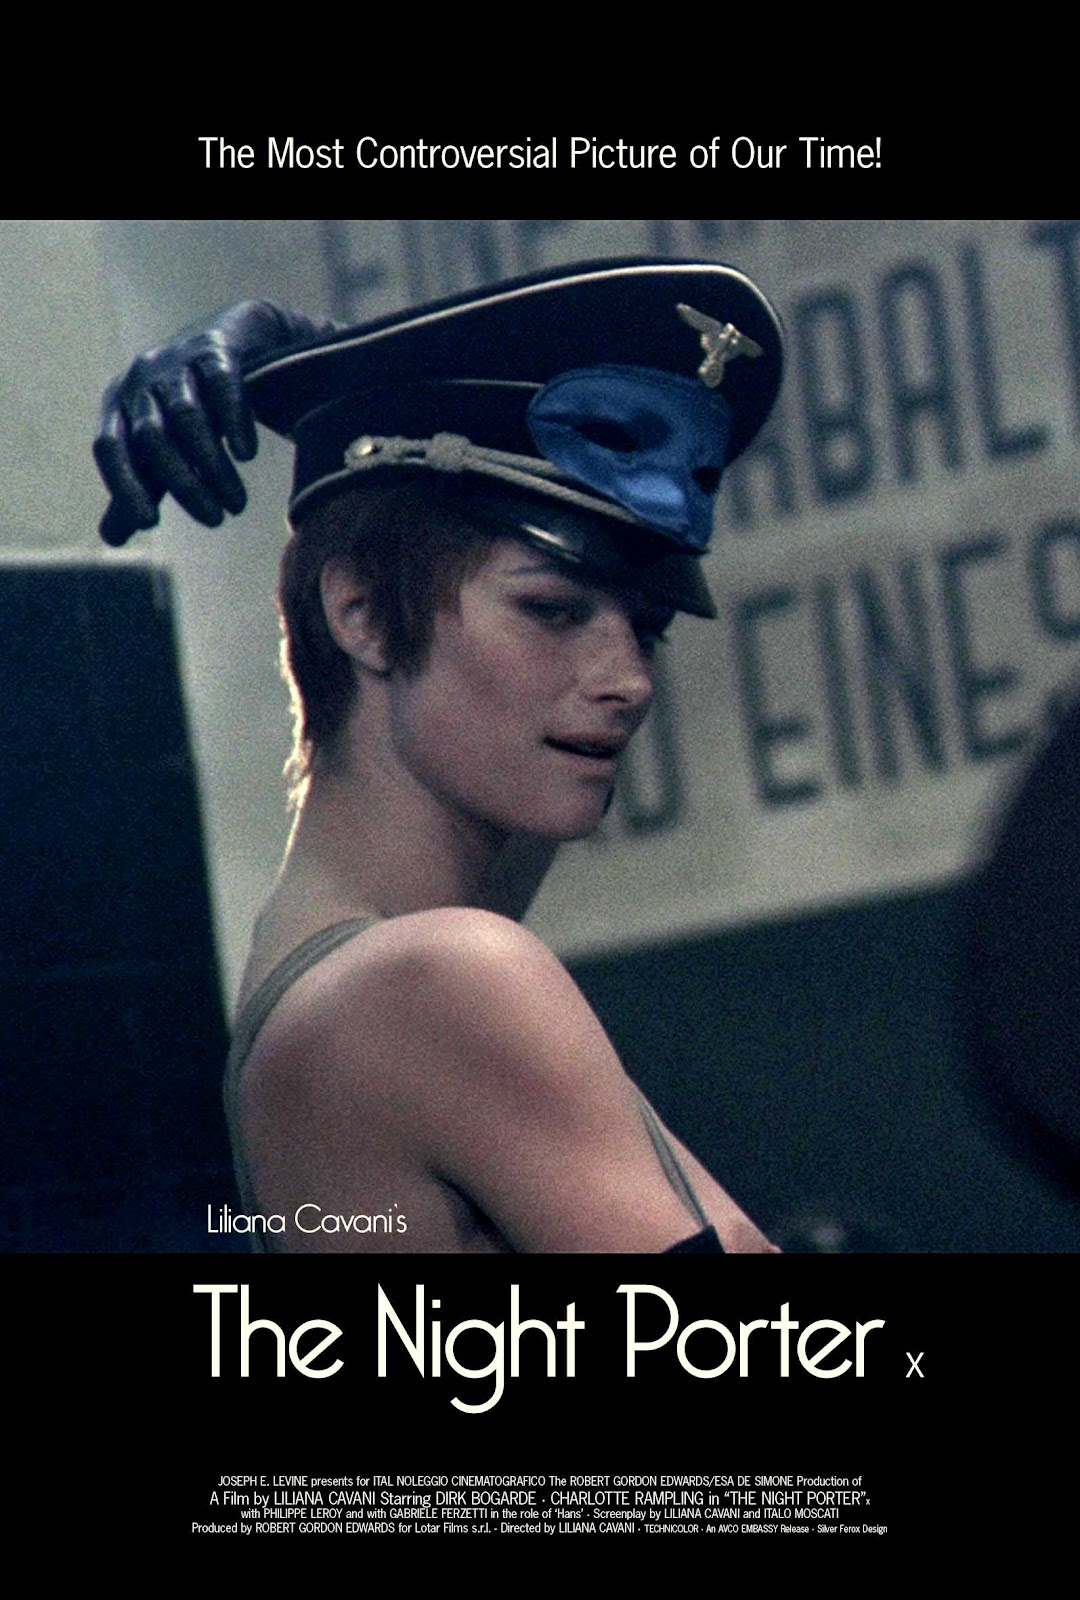 Charotte rampling in the night porter - 1 part 9